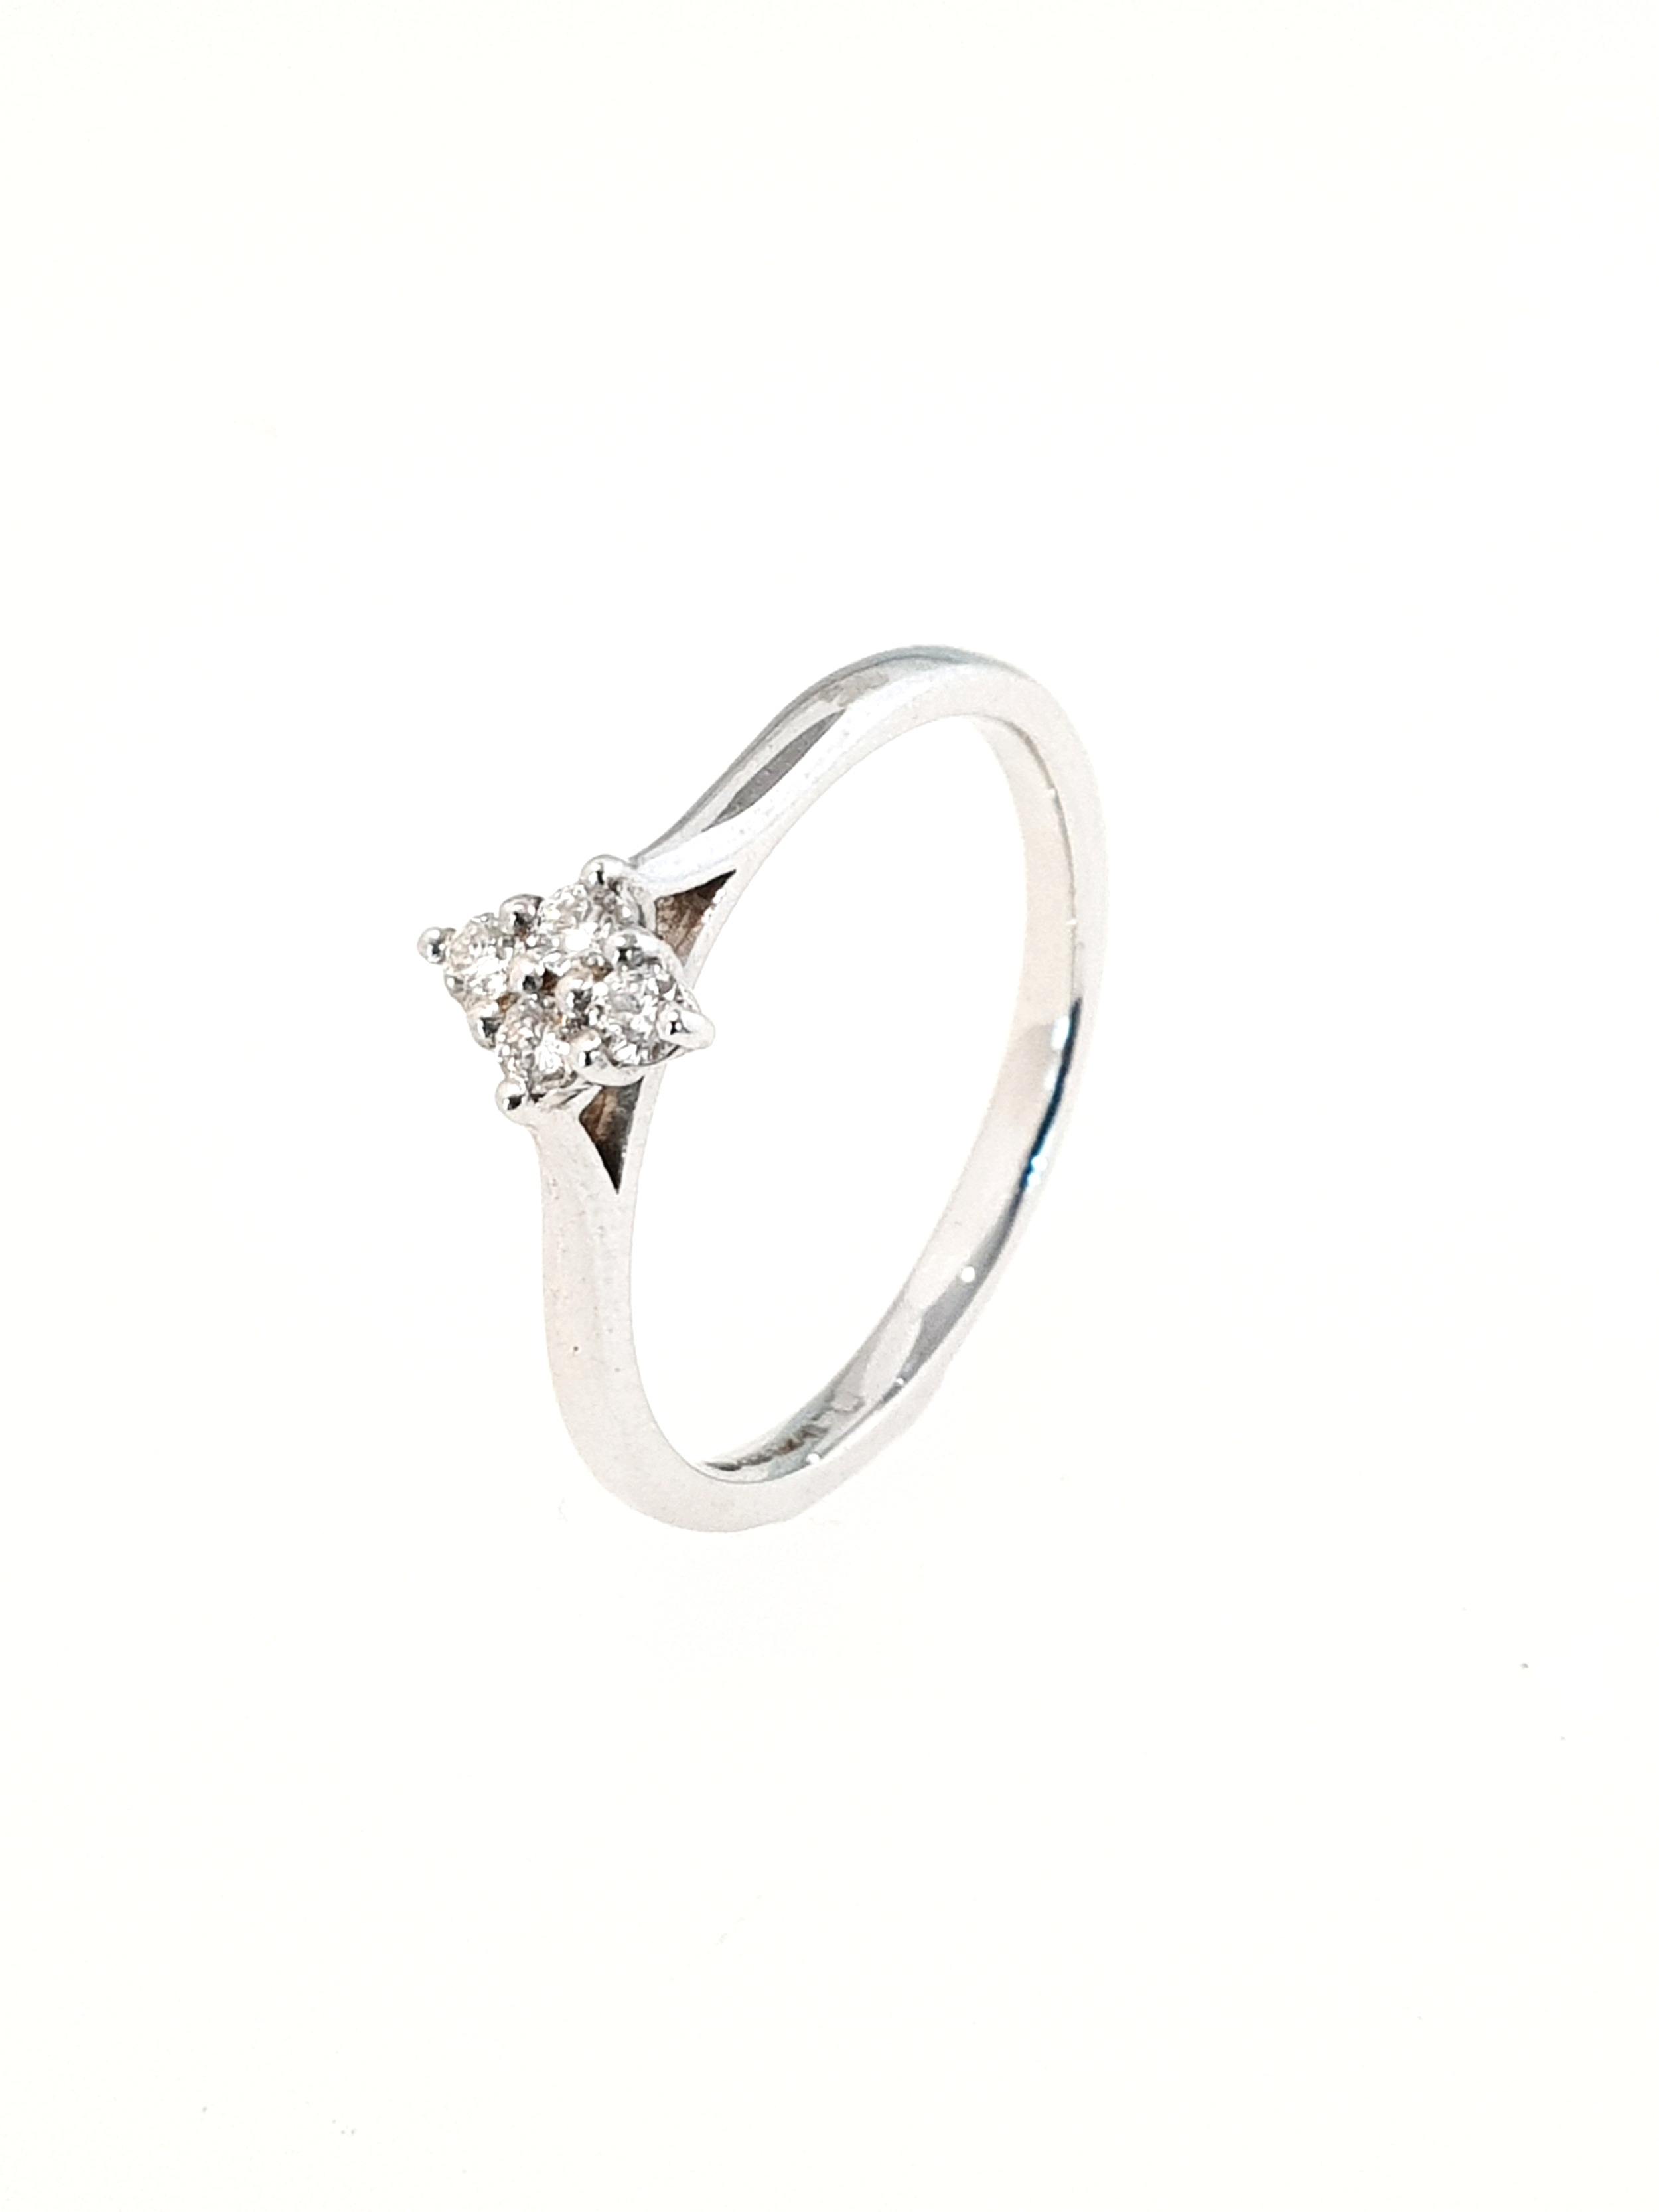 9ct White Gold 4 x Diamond Cluster Ring  Stock Code: G1929  £475